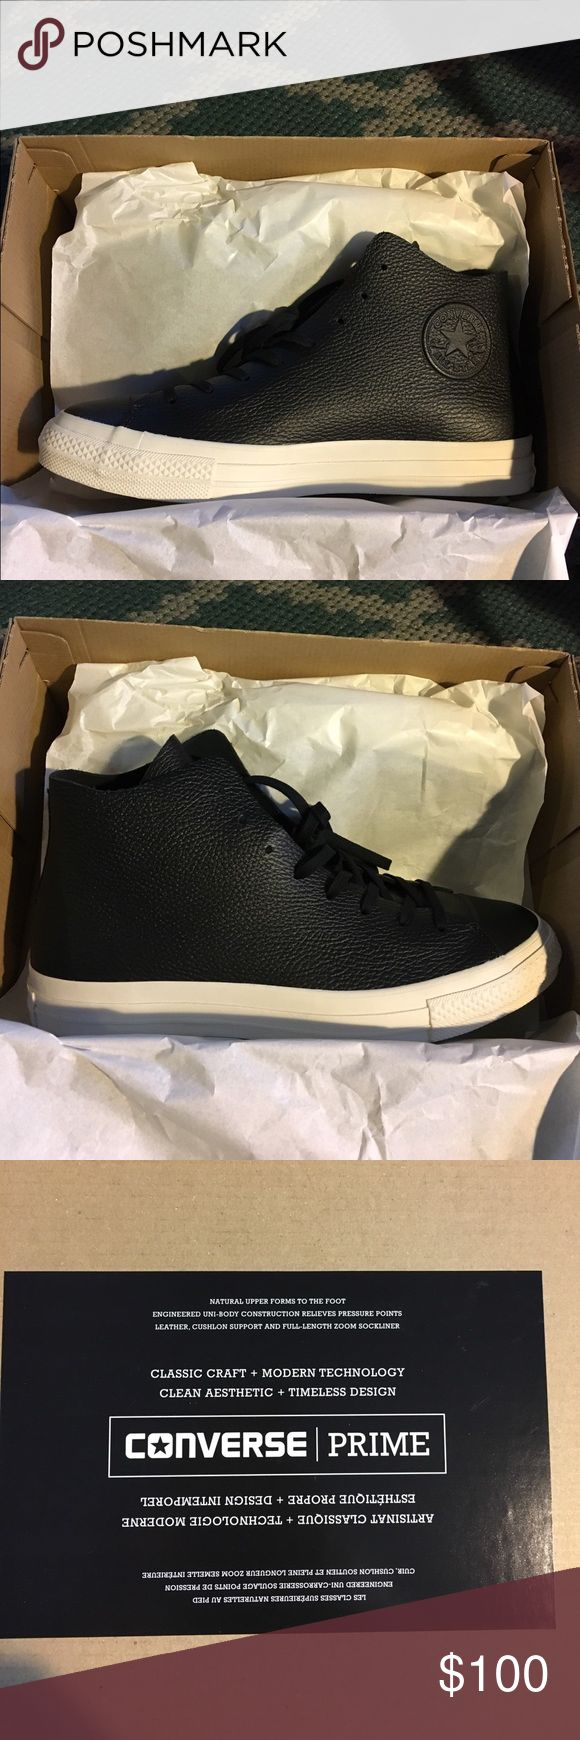 NIB Leather Converse with Nike Zoom Technology! New in box. Seriously cool shoe. Bought them for groomsmen but they already had black shoes that worked. Leather. From a pet free and smoke free home Converse Shoes